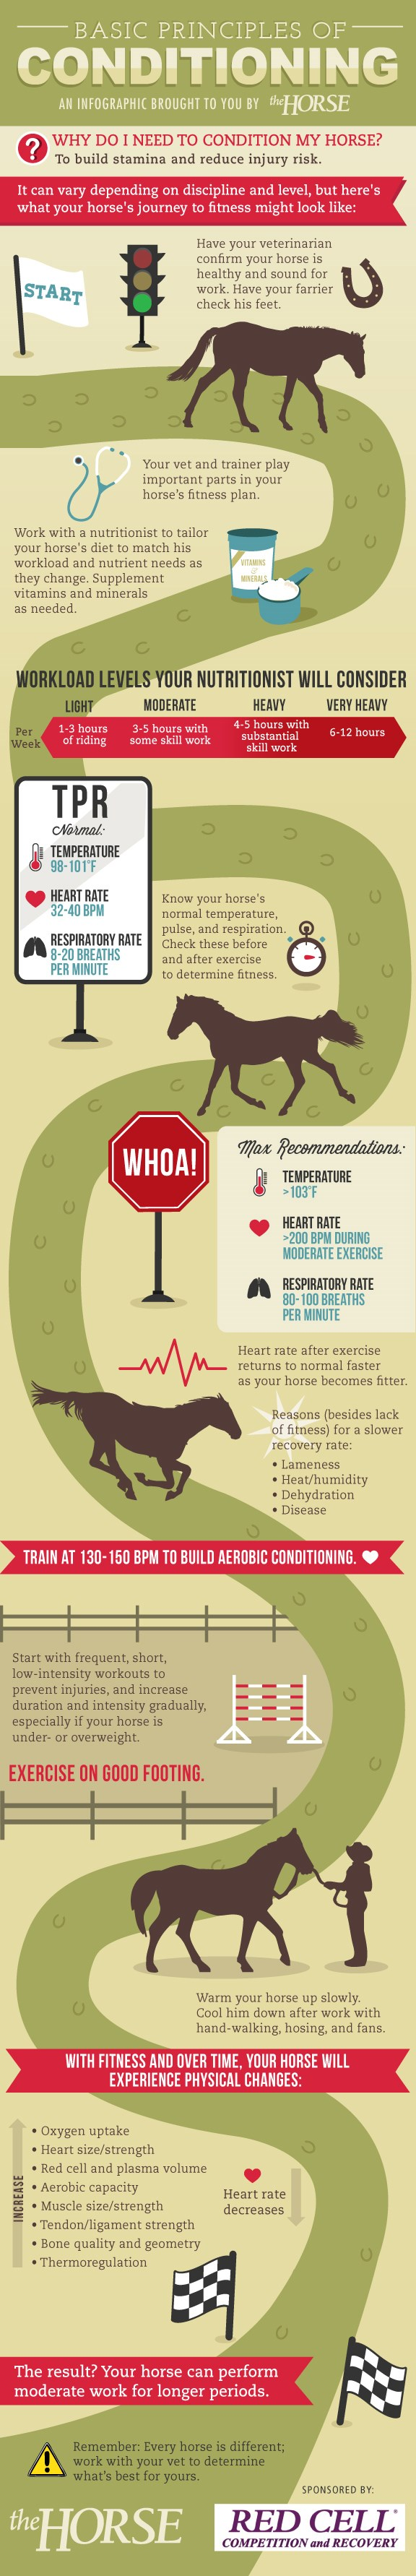 conditioning-for-performace-infographic